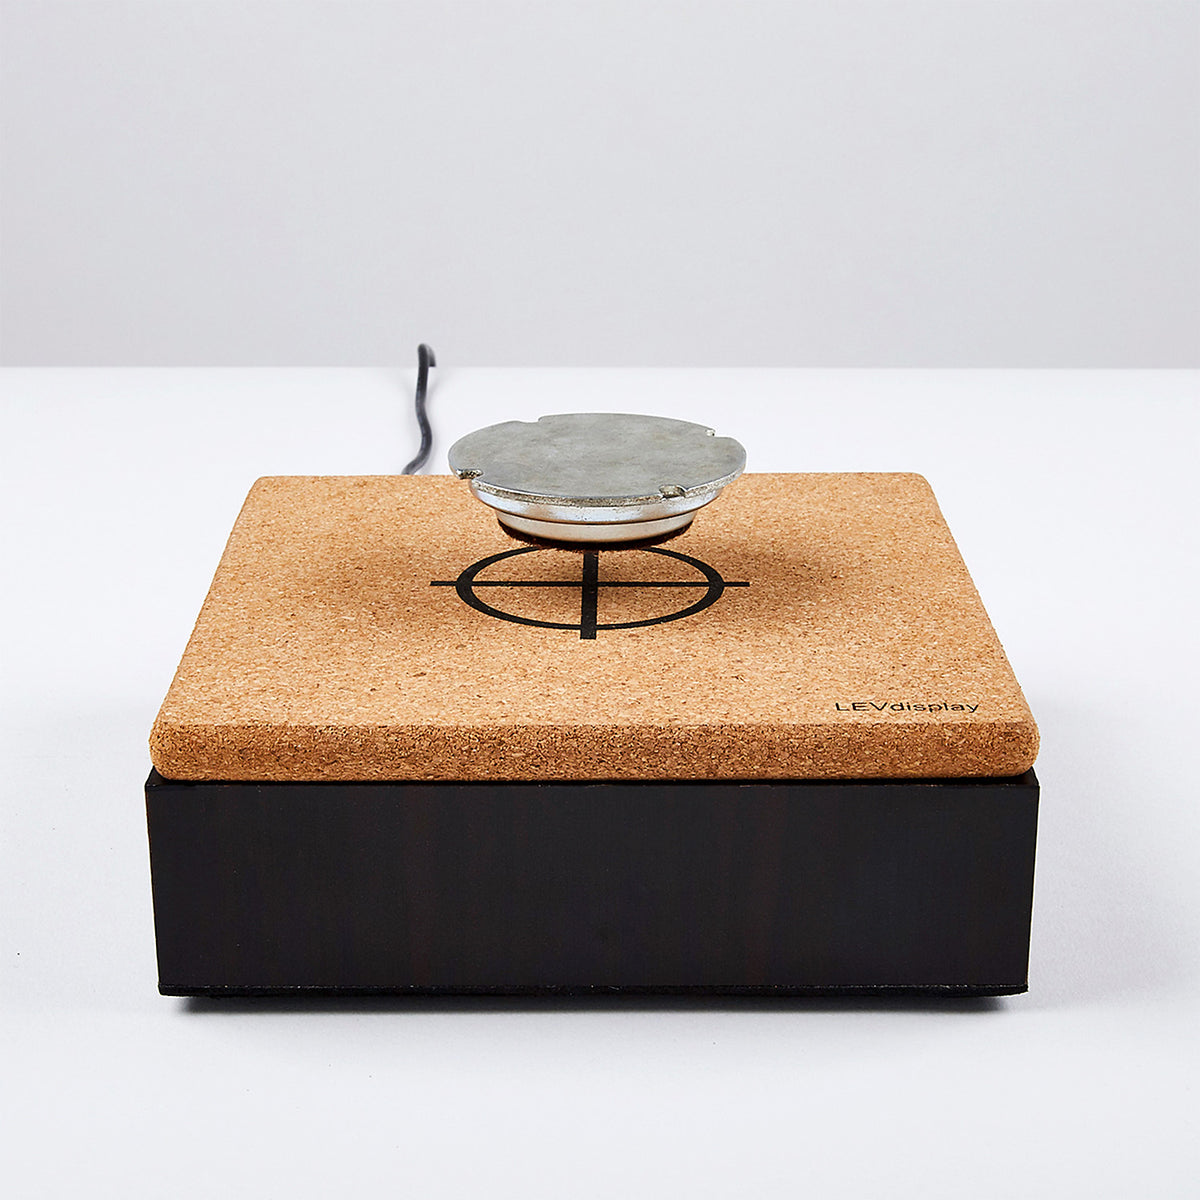 Magnetic Levitation Display